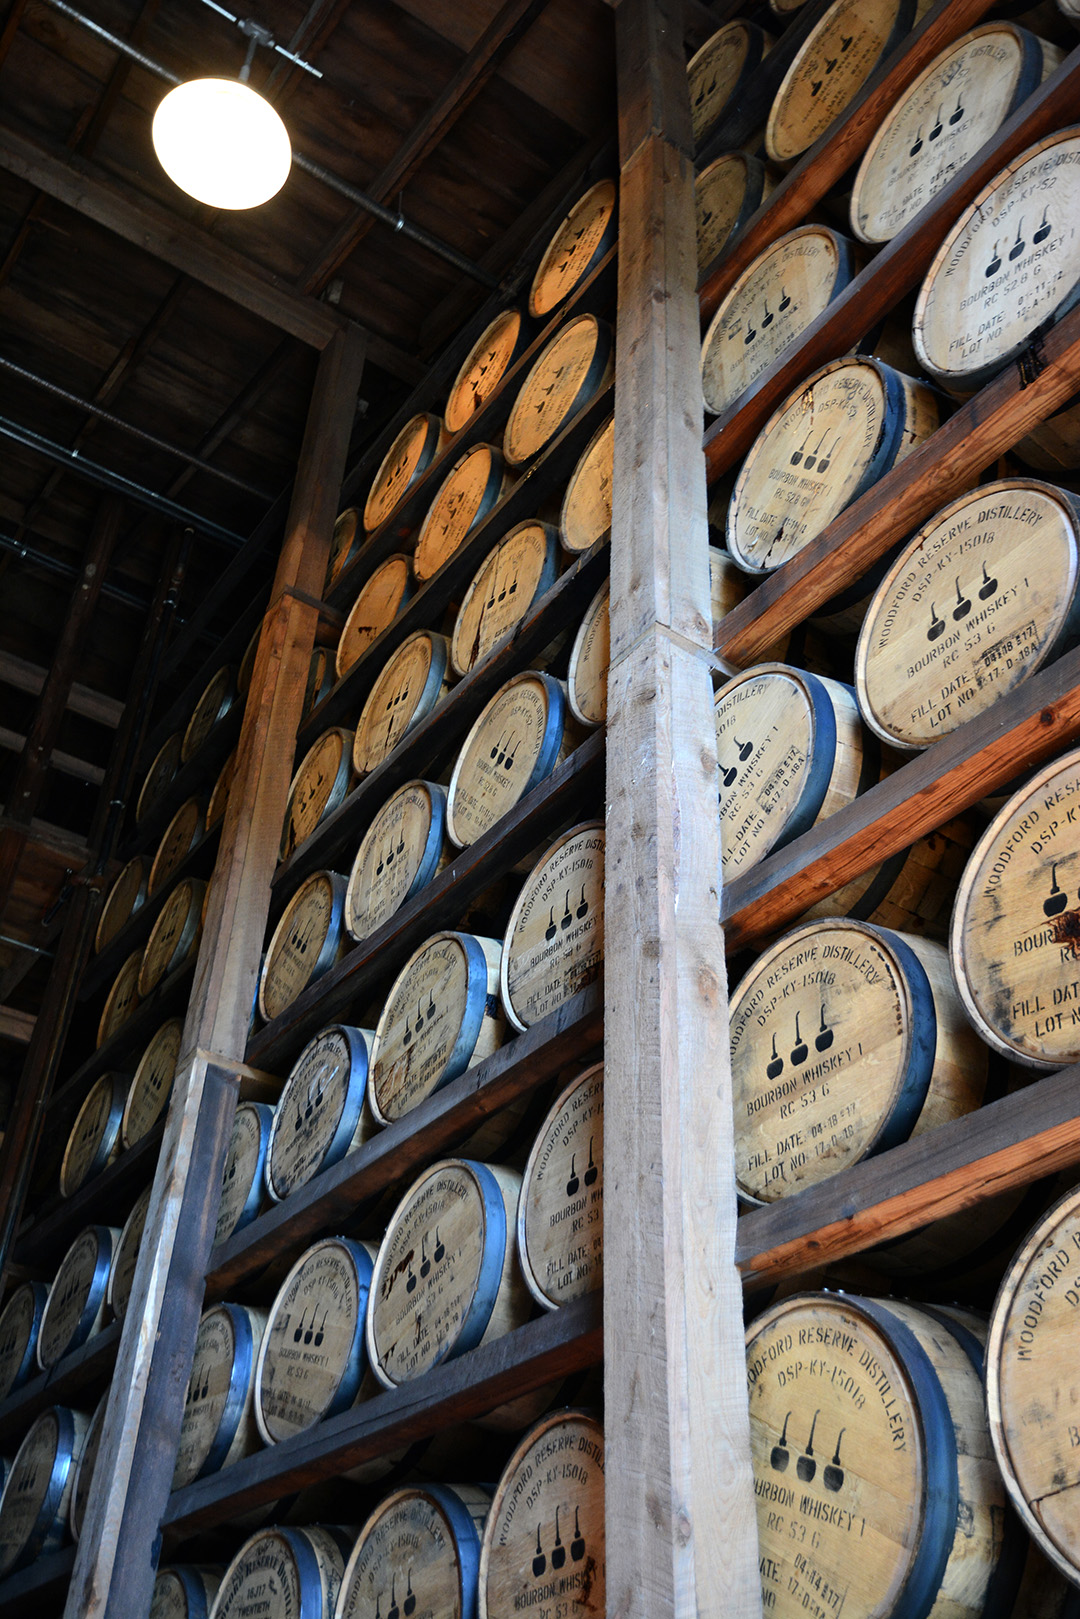 woodford reserve ages their bourbon in charred oak barrels.